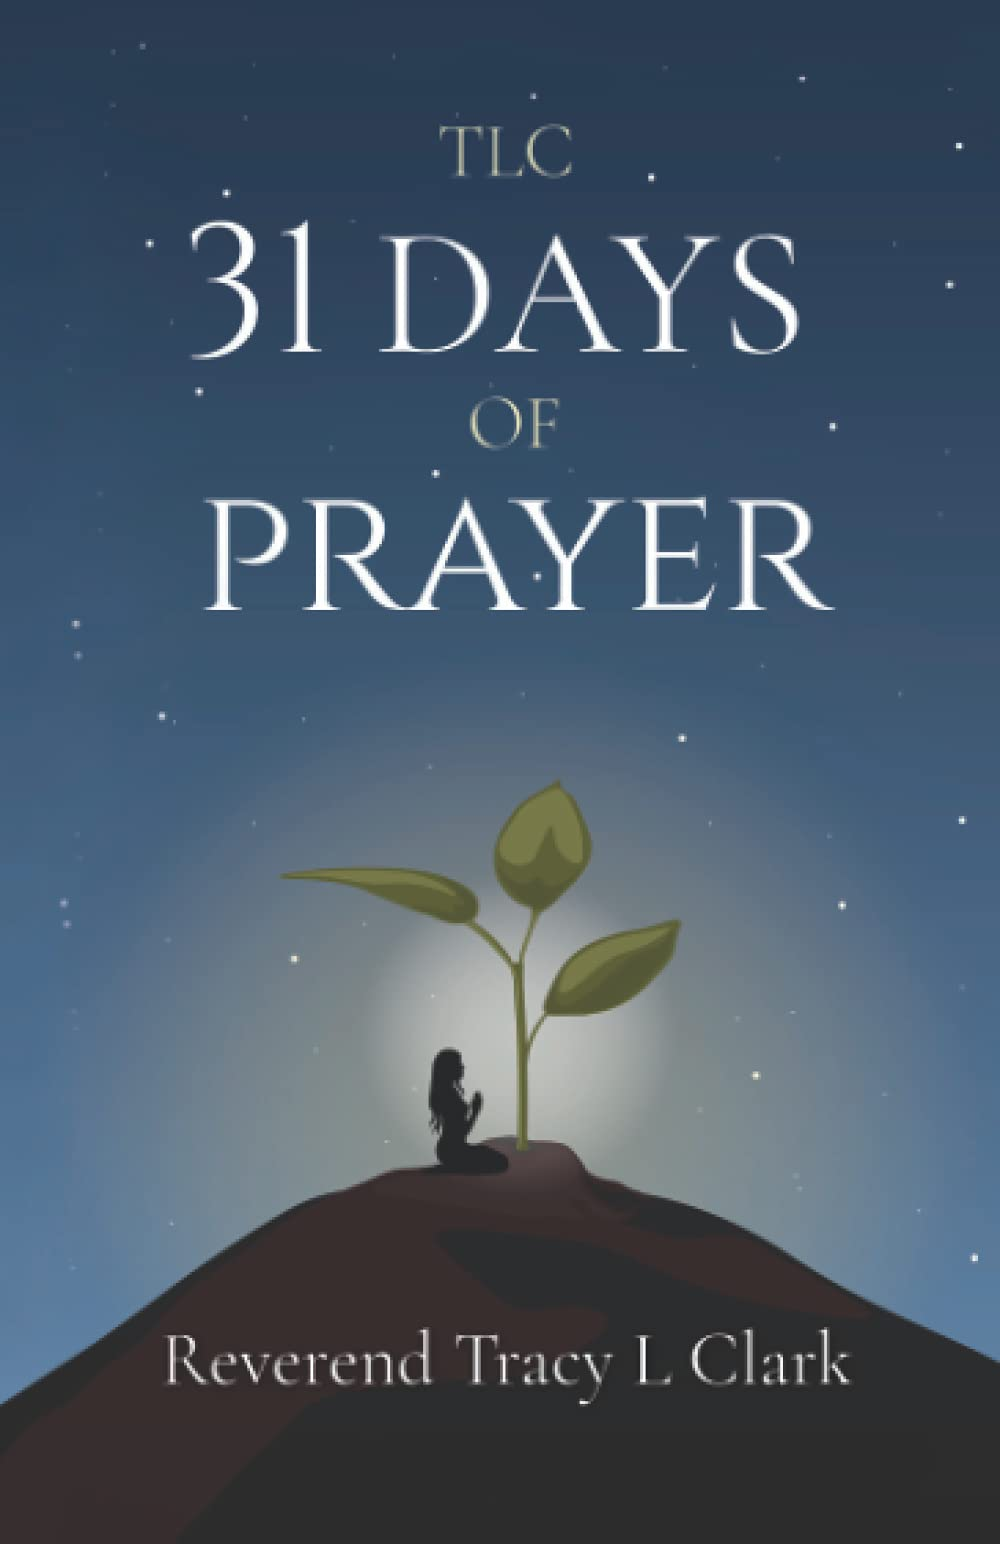 31 Days of Prayer Book Cover